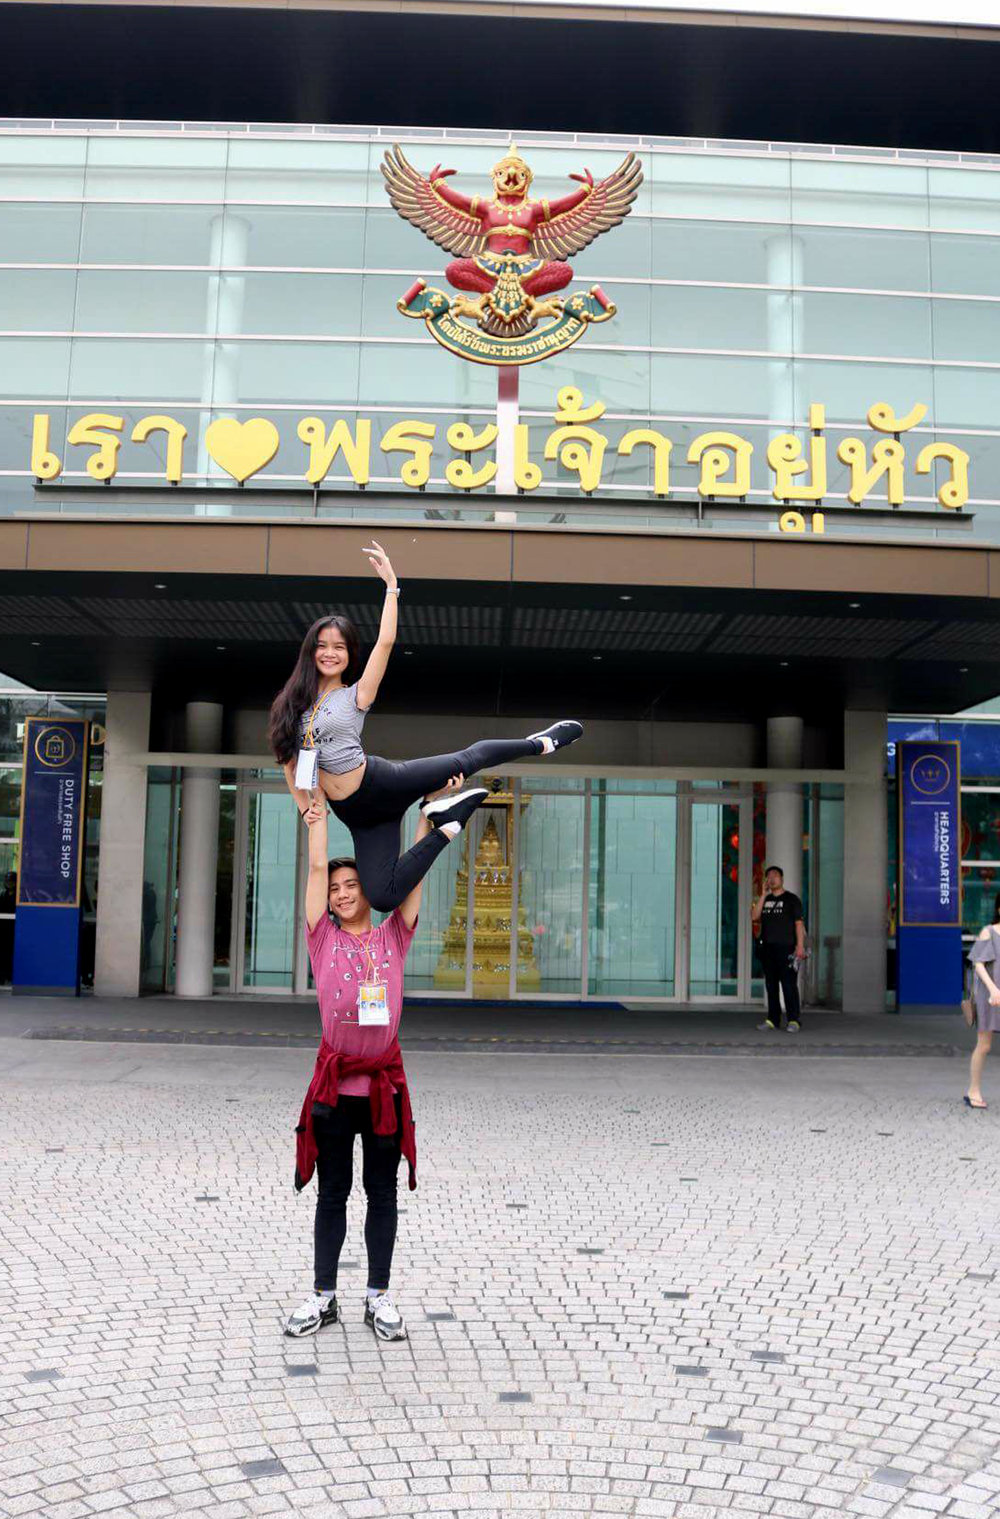 Uplifted: Brian gives partner Shaira a boost in front of the theater where they competed in Bangkok.